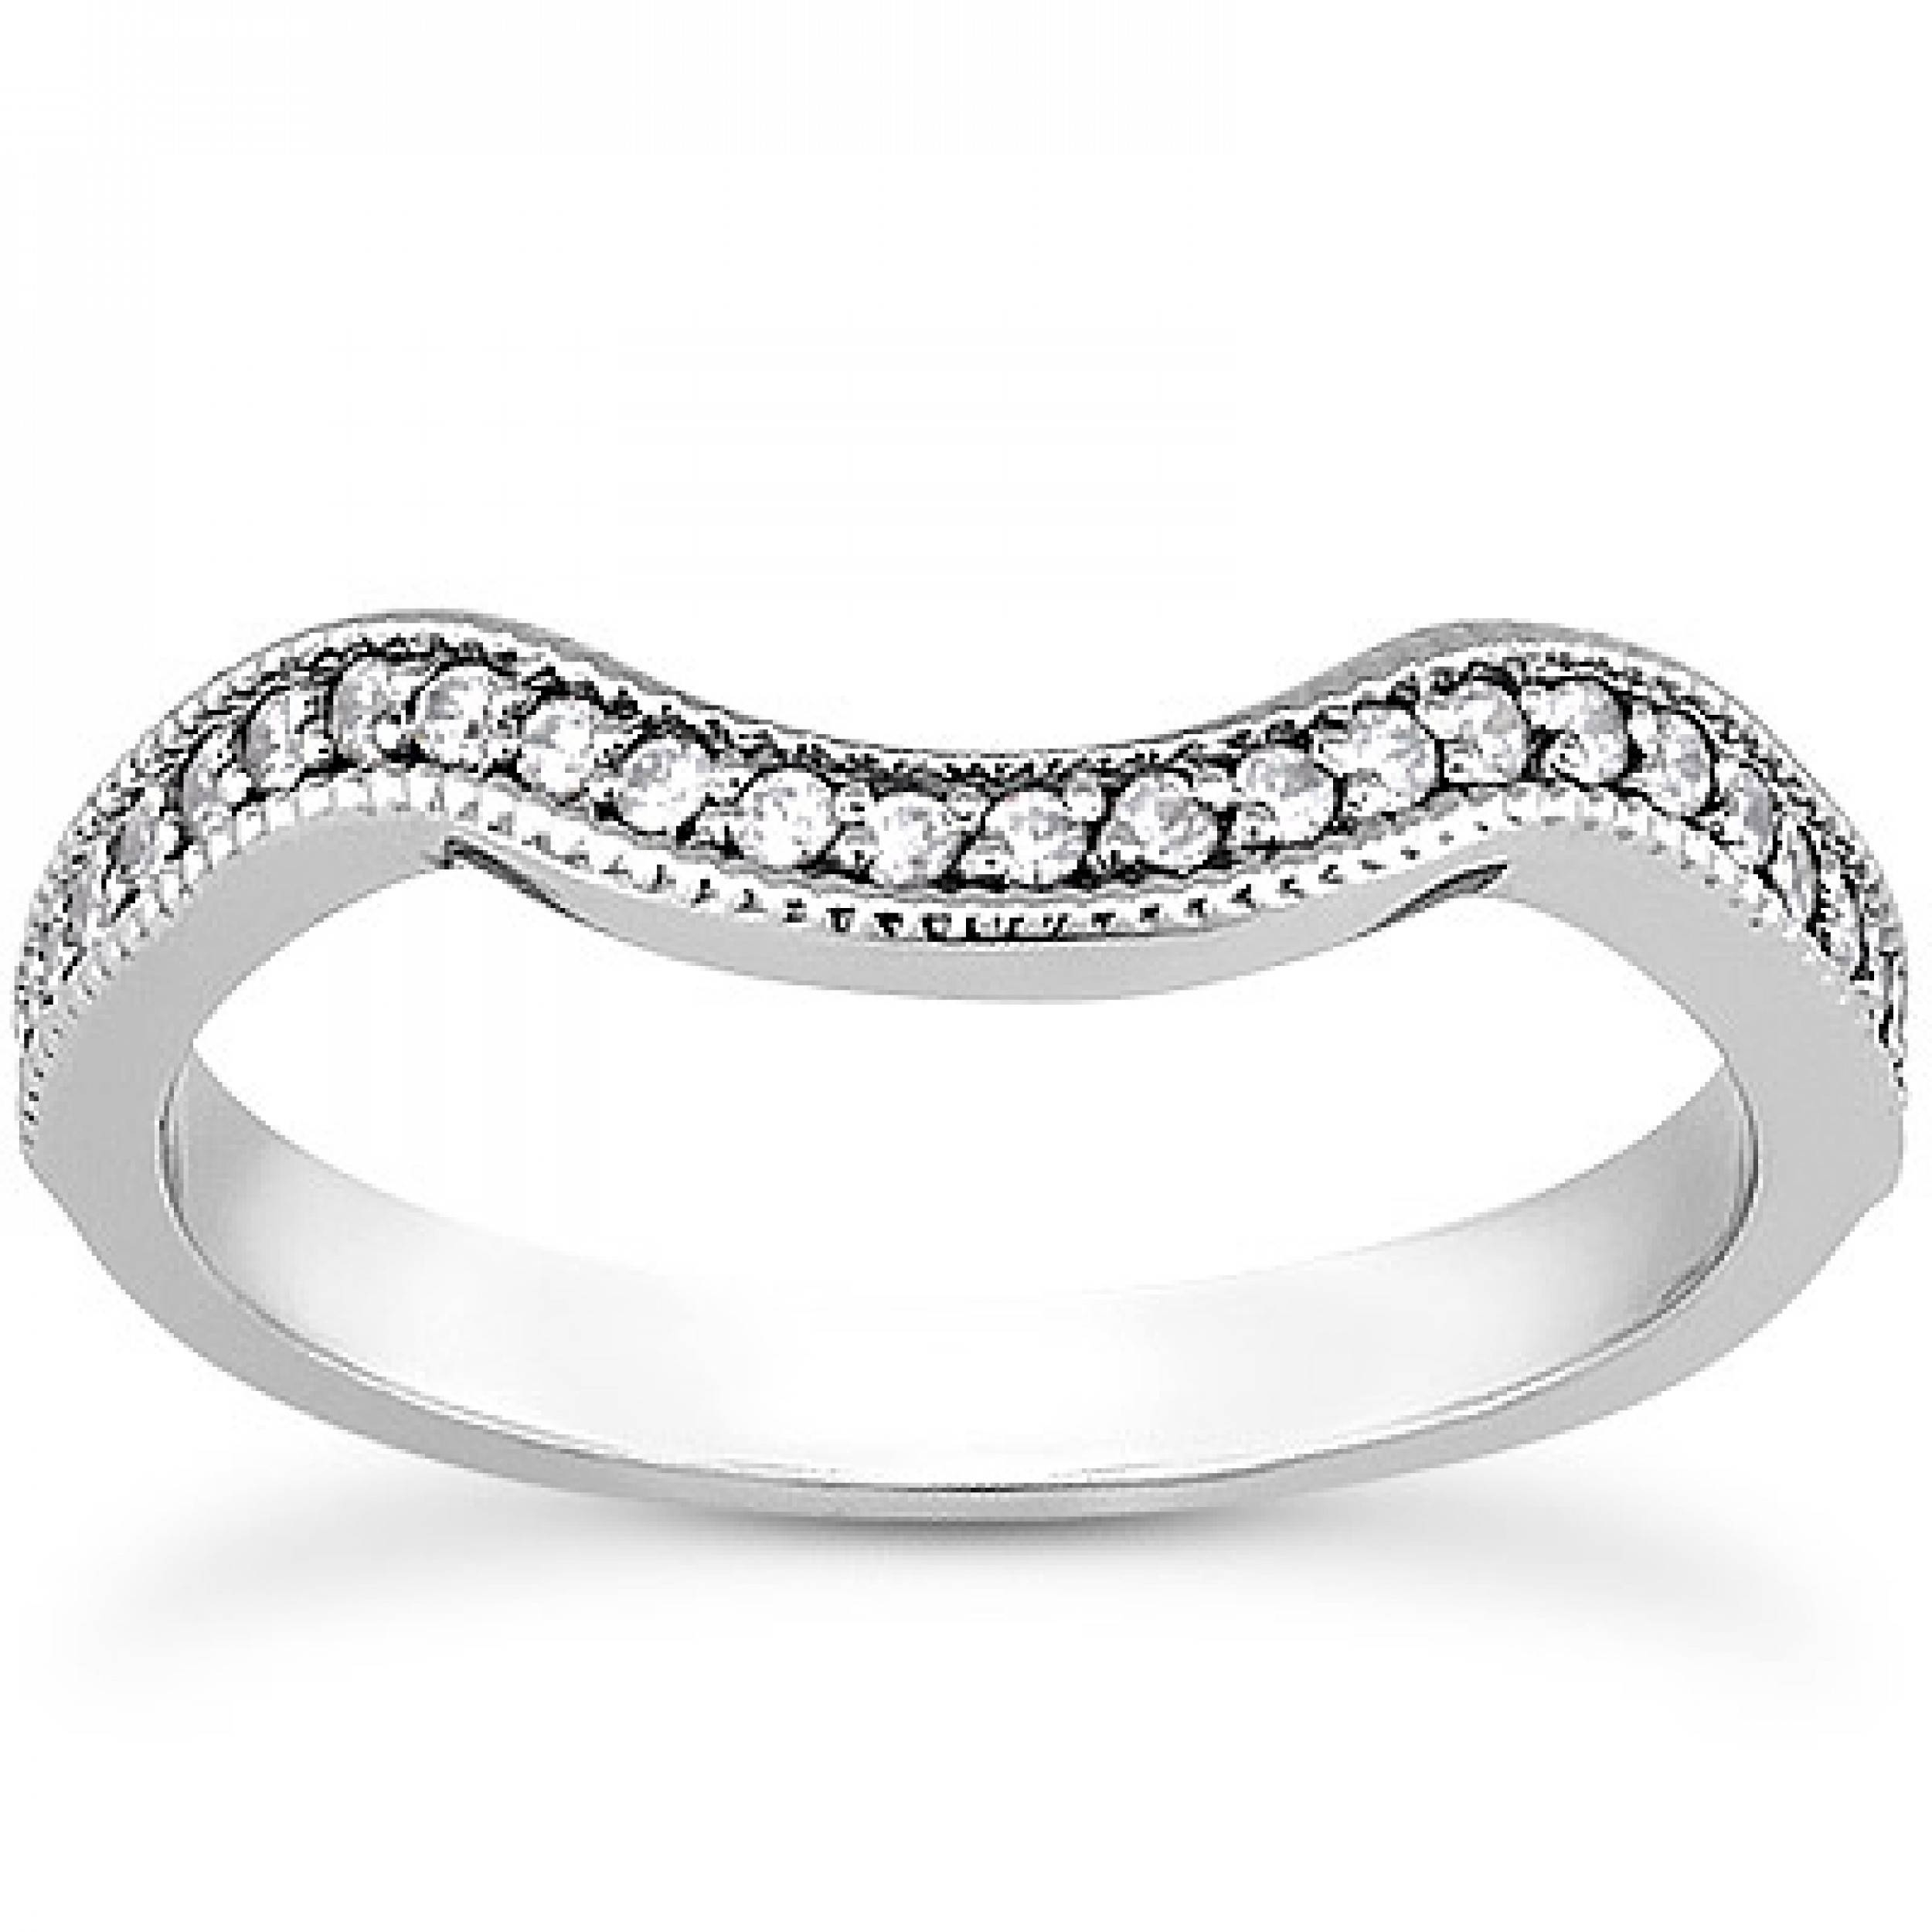 2.5Mm Matching Curved Vintage Diamond Wedding Band In 18K White Gold Within Curved Wedding Bands For Women (Gallery 5 of 15)